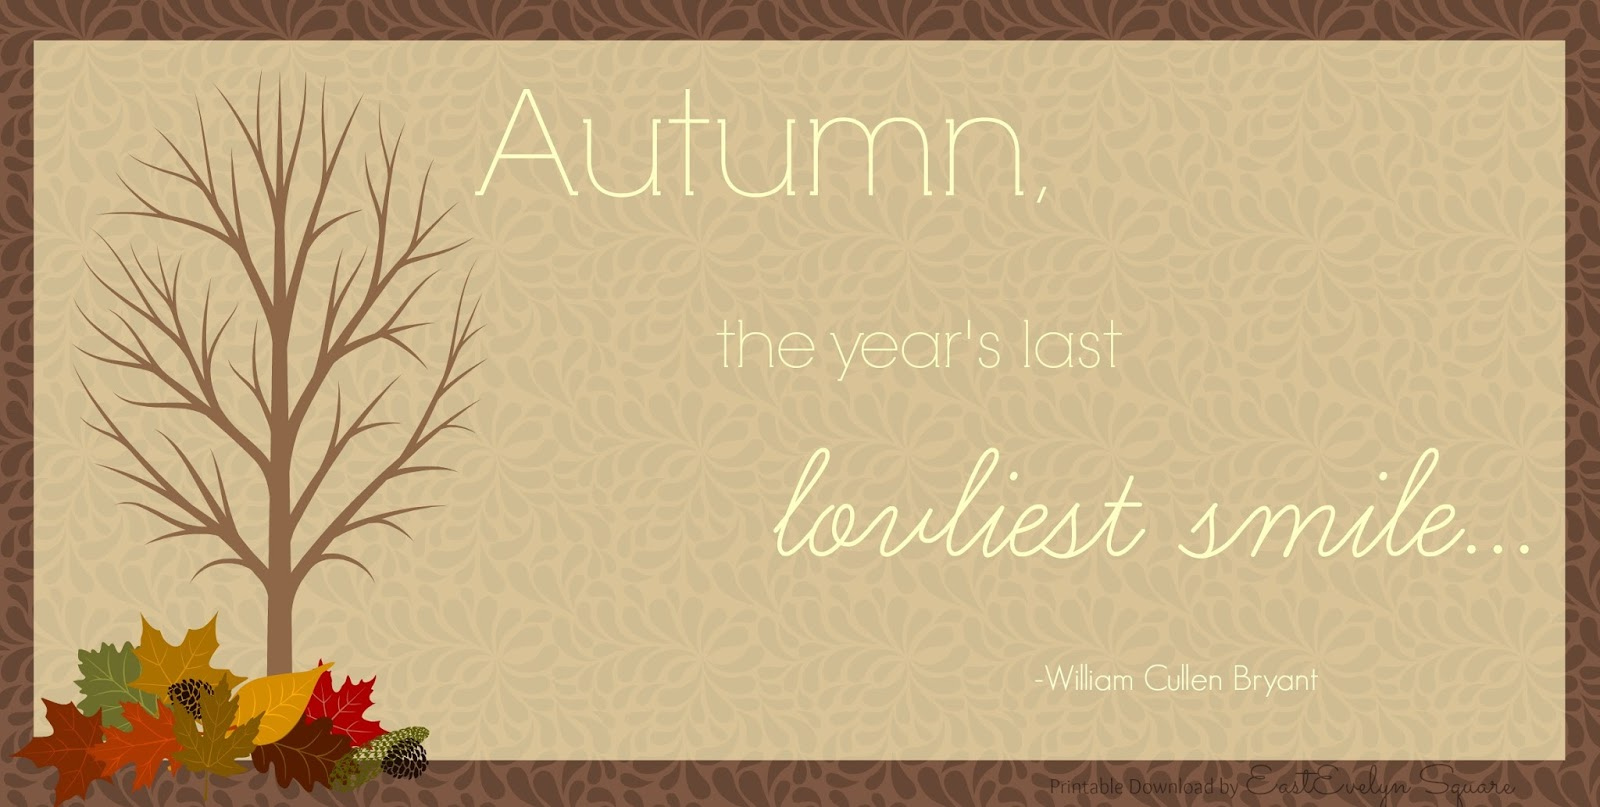 Fall is in the Air... #Free #Fall #Printable / #Download from EastEvelyn Square  For more free downloads go to: EastEvelynSquare.blogspot.com